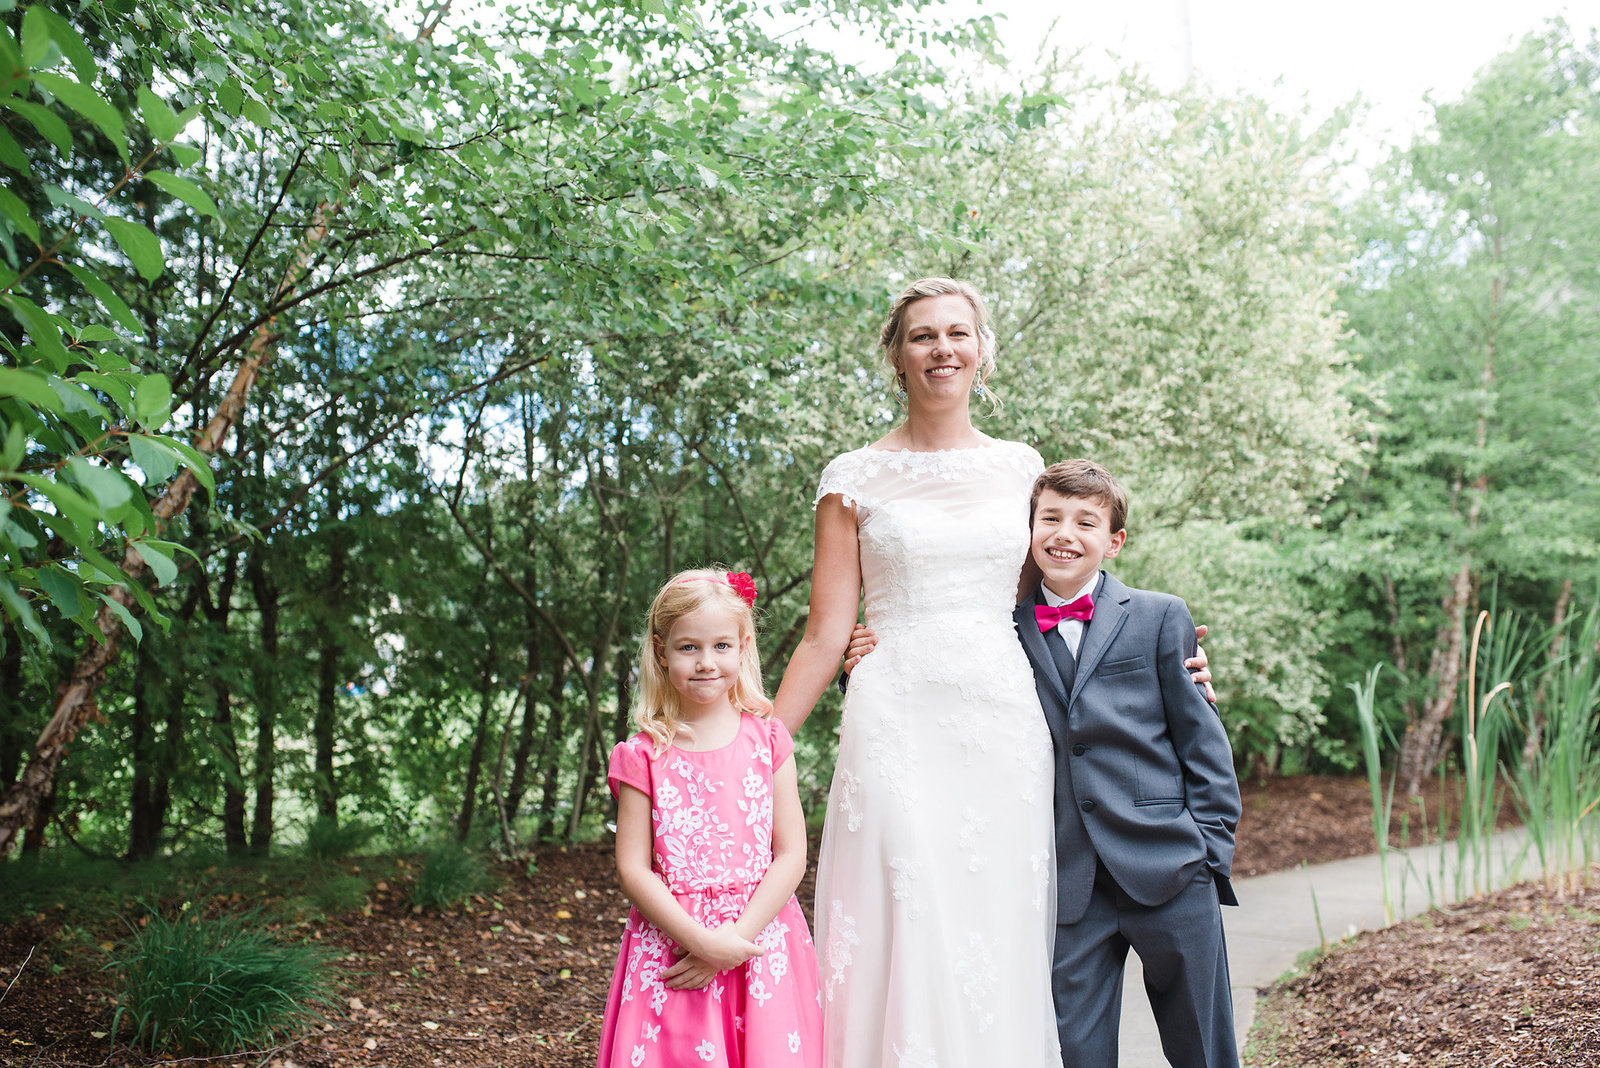 bride with son and daughter, wedding ceremony in a garden